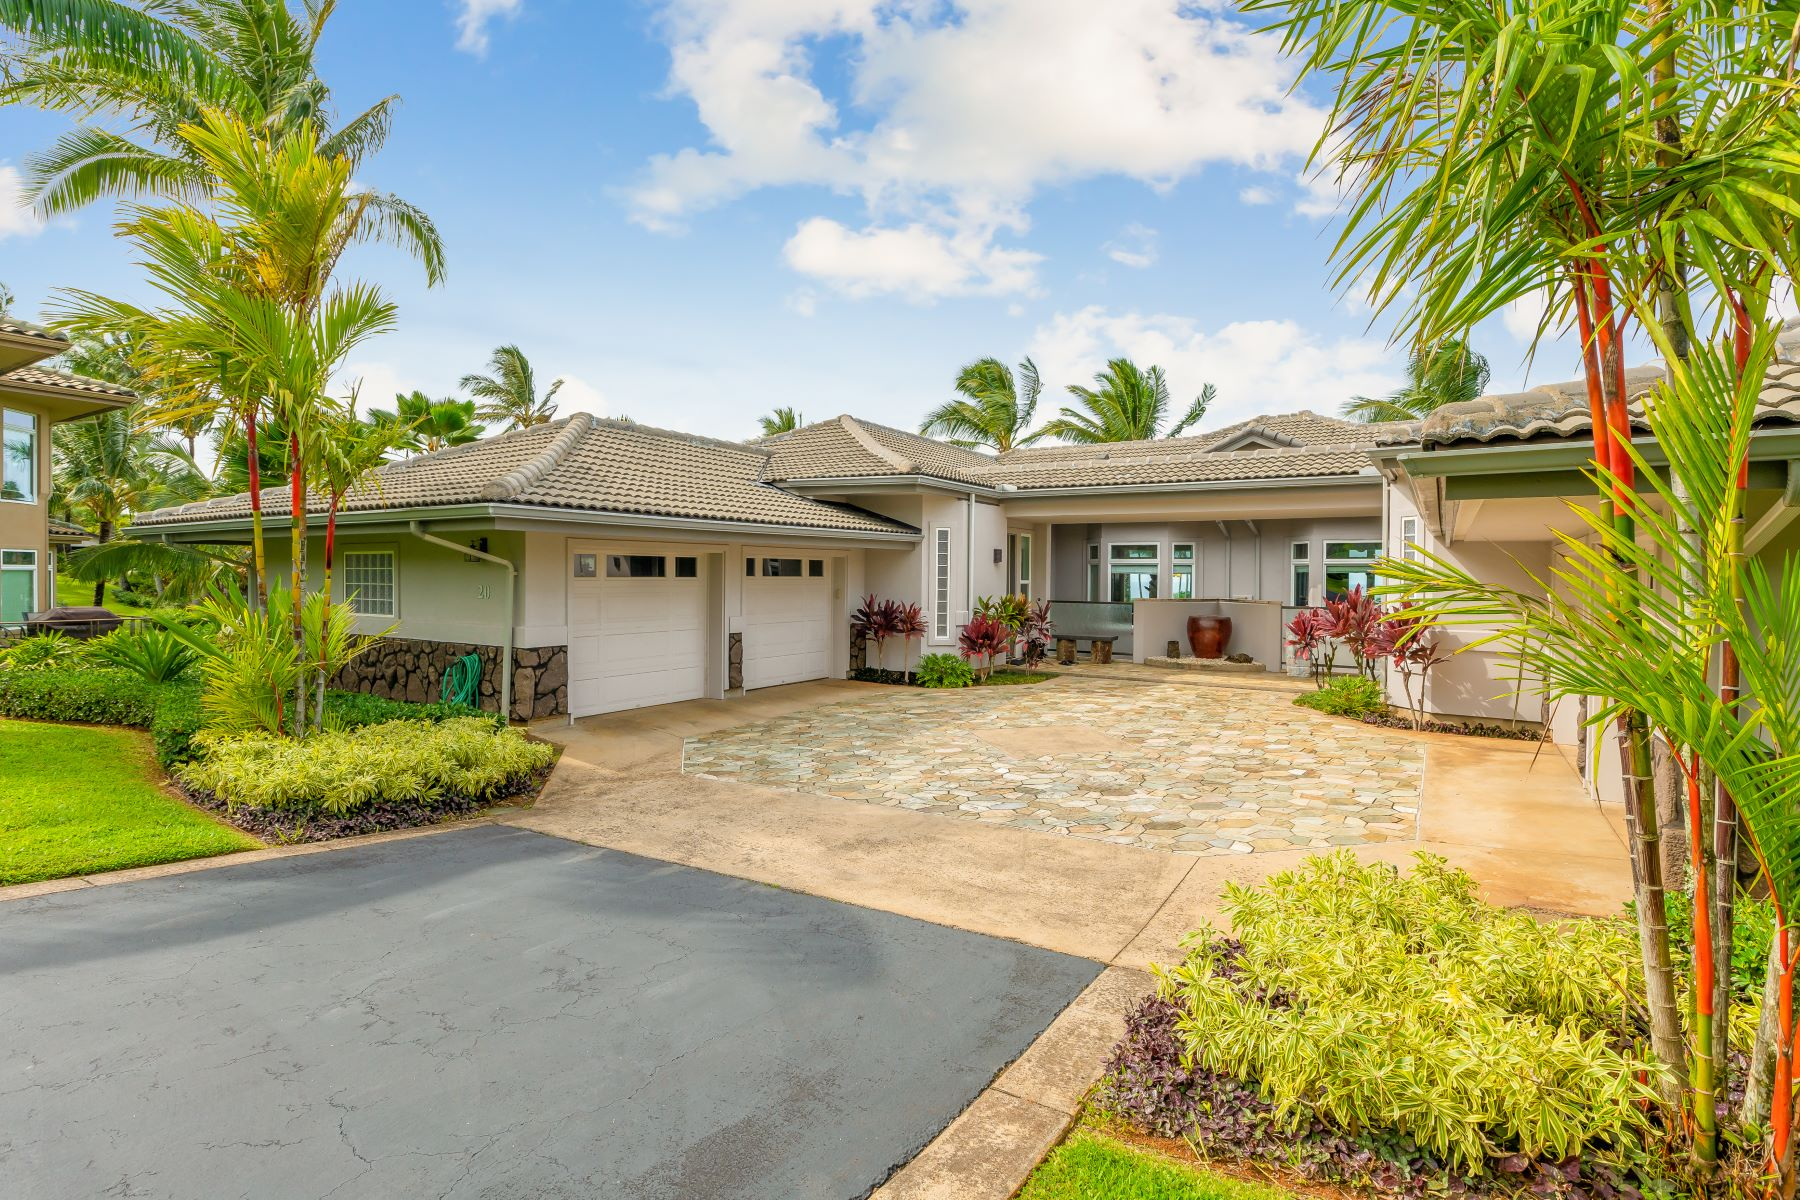 Condominiums for Sale at 4100 QUEEN EMMA DR #20 PRINCEVILLE, HI 96722 4100 QUEEN EMMA DR #20 Princeville, Hawaii 96722 United States